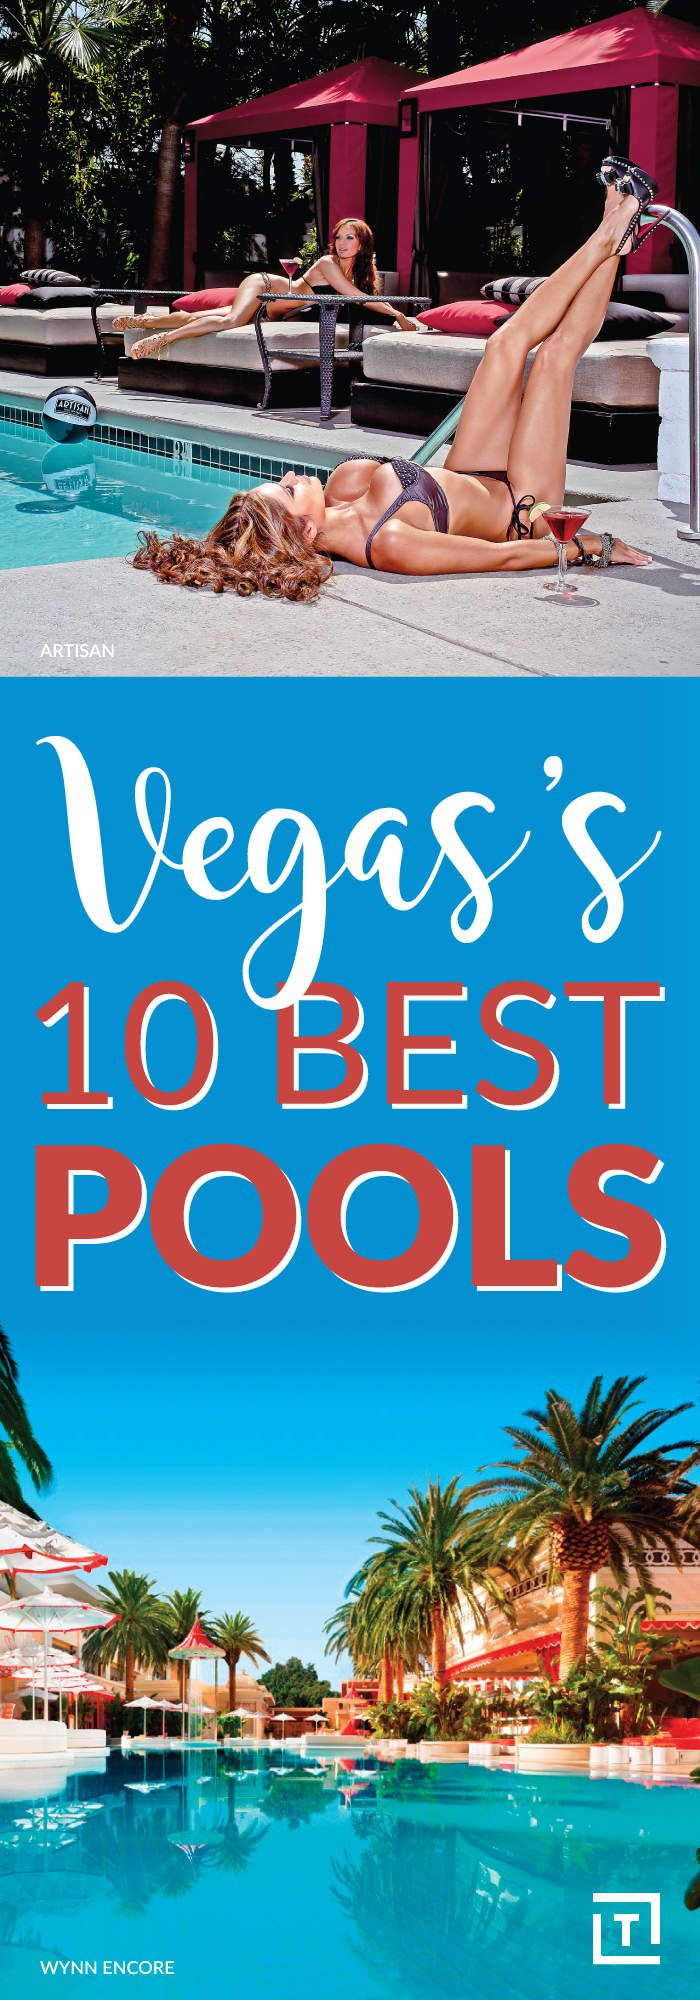 From ARIA to Palms, These Are Vegas' 10 Best Pools